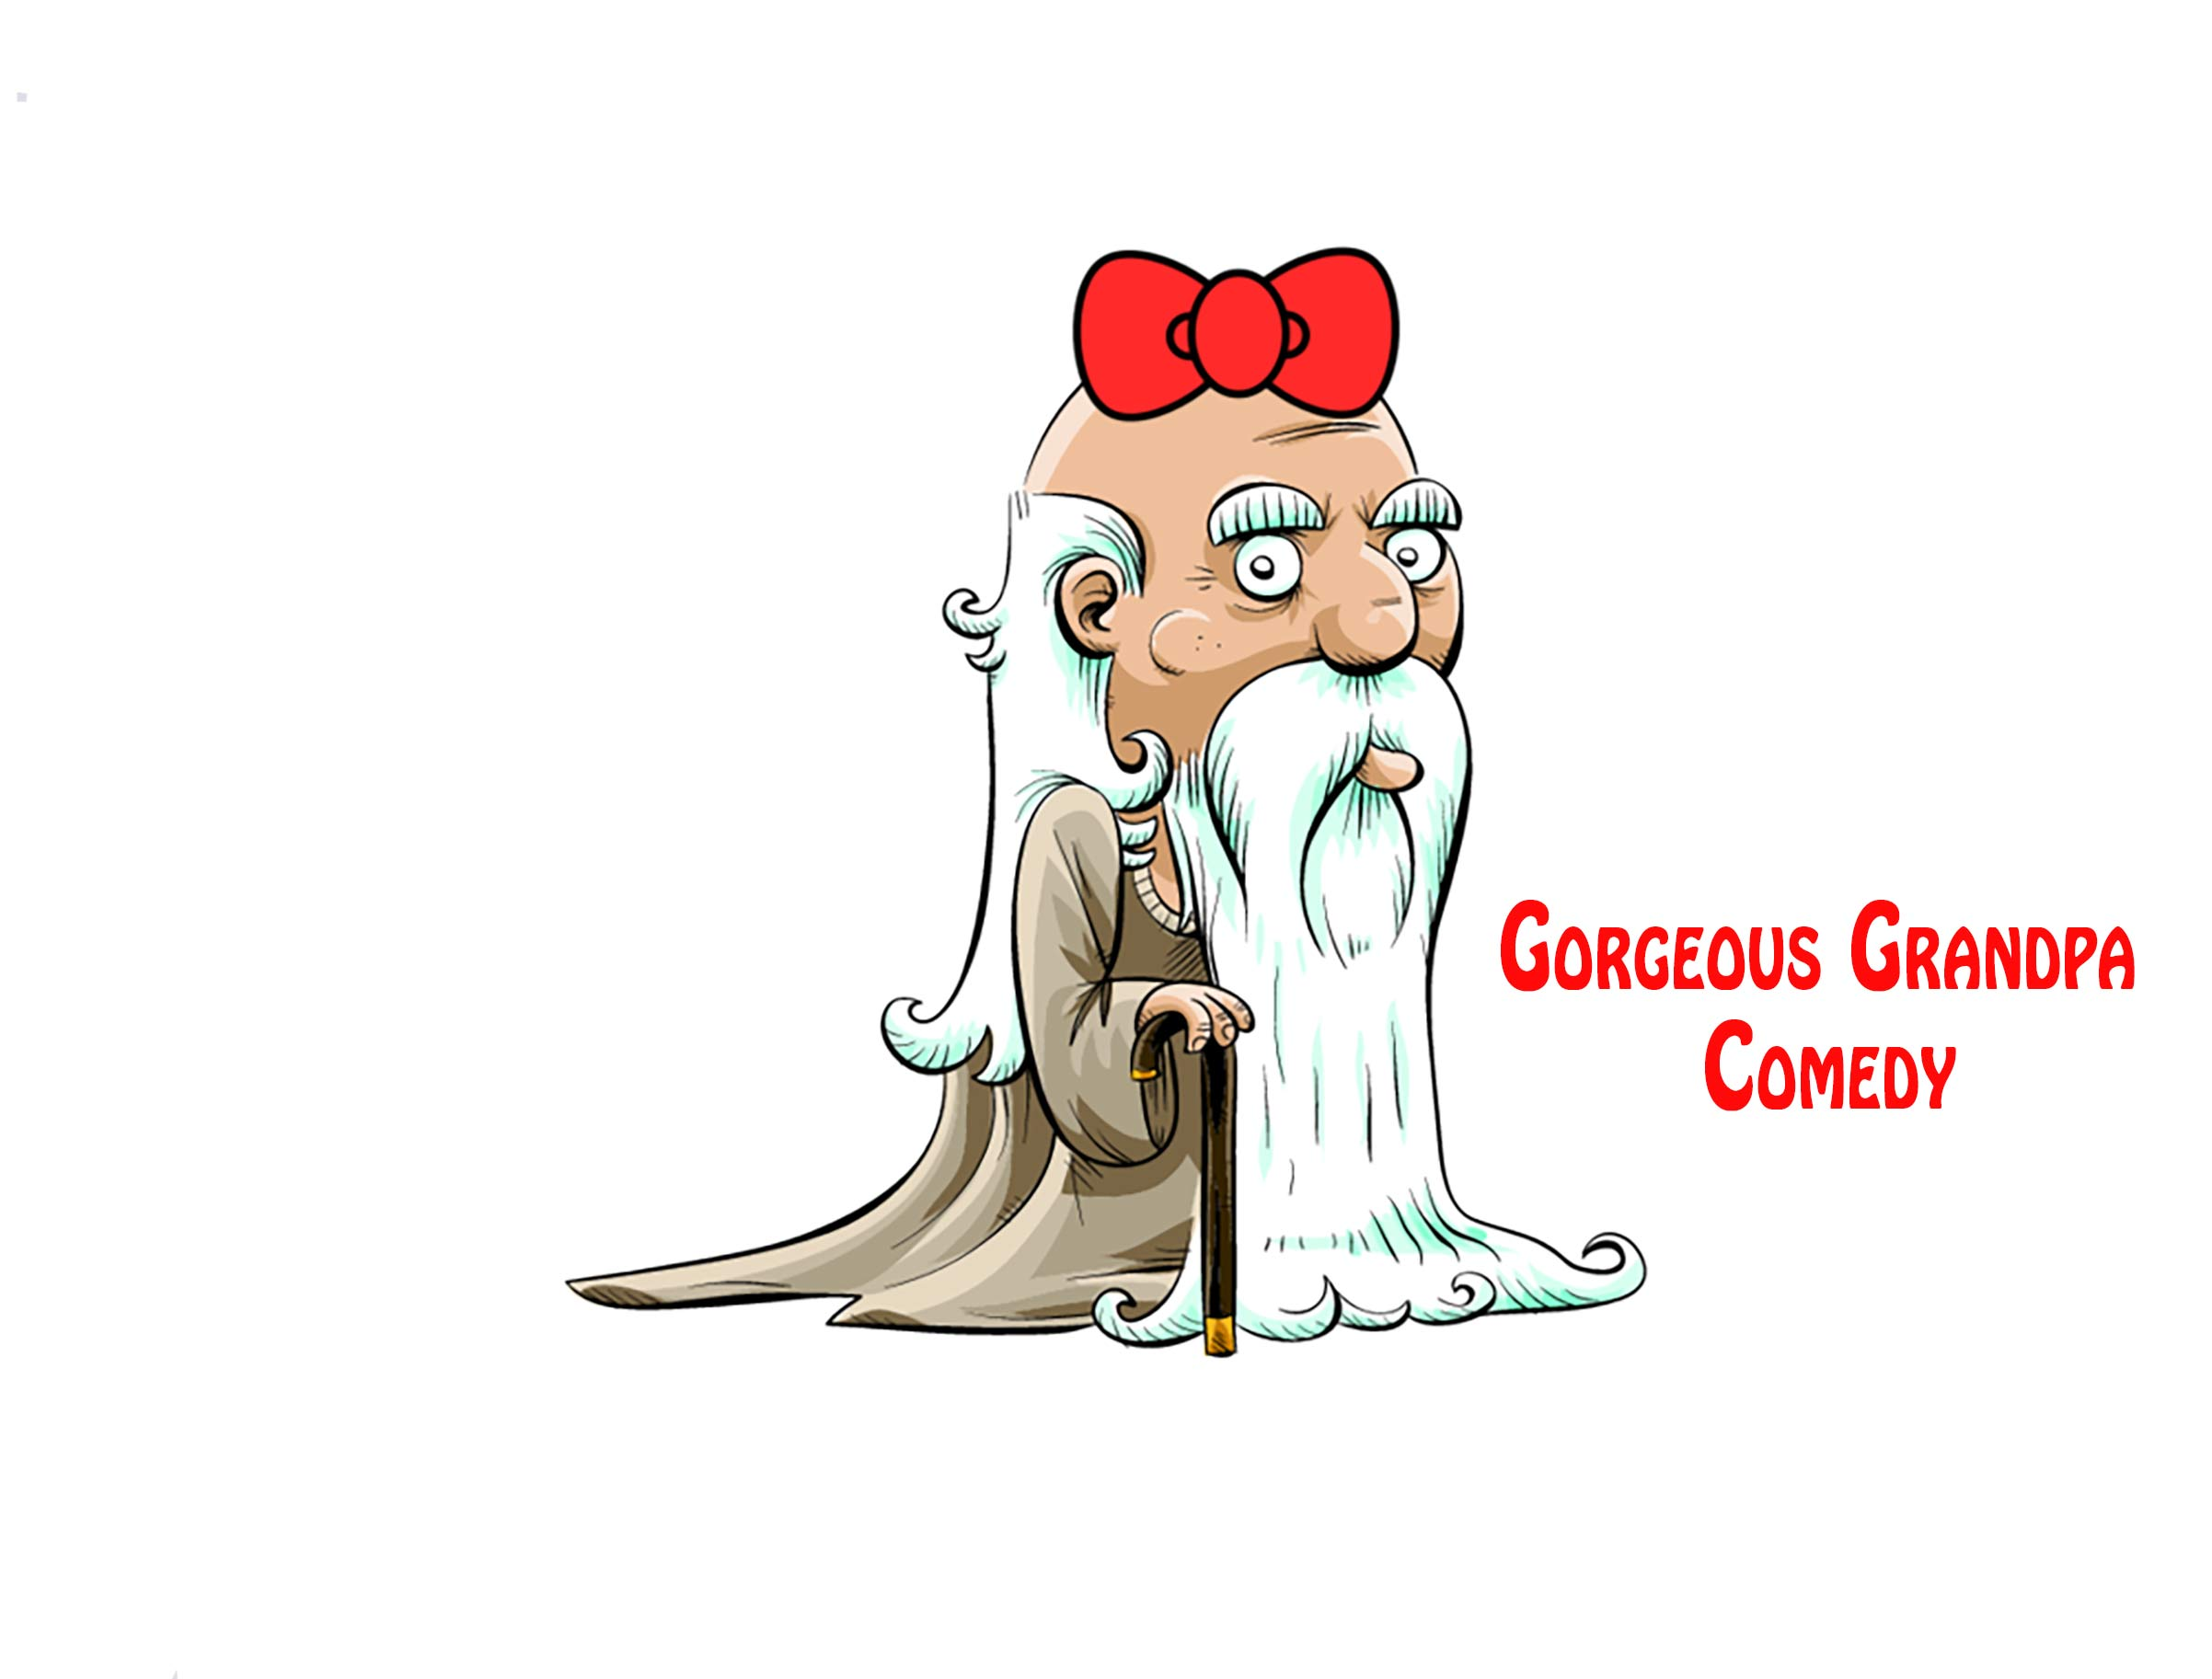 Music For Comedy -   Gorgeous Grandpa Comedy